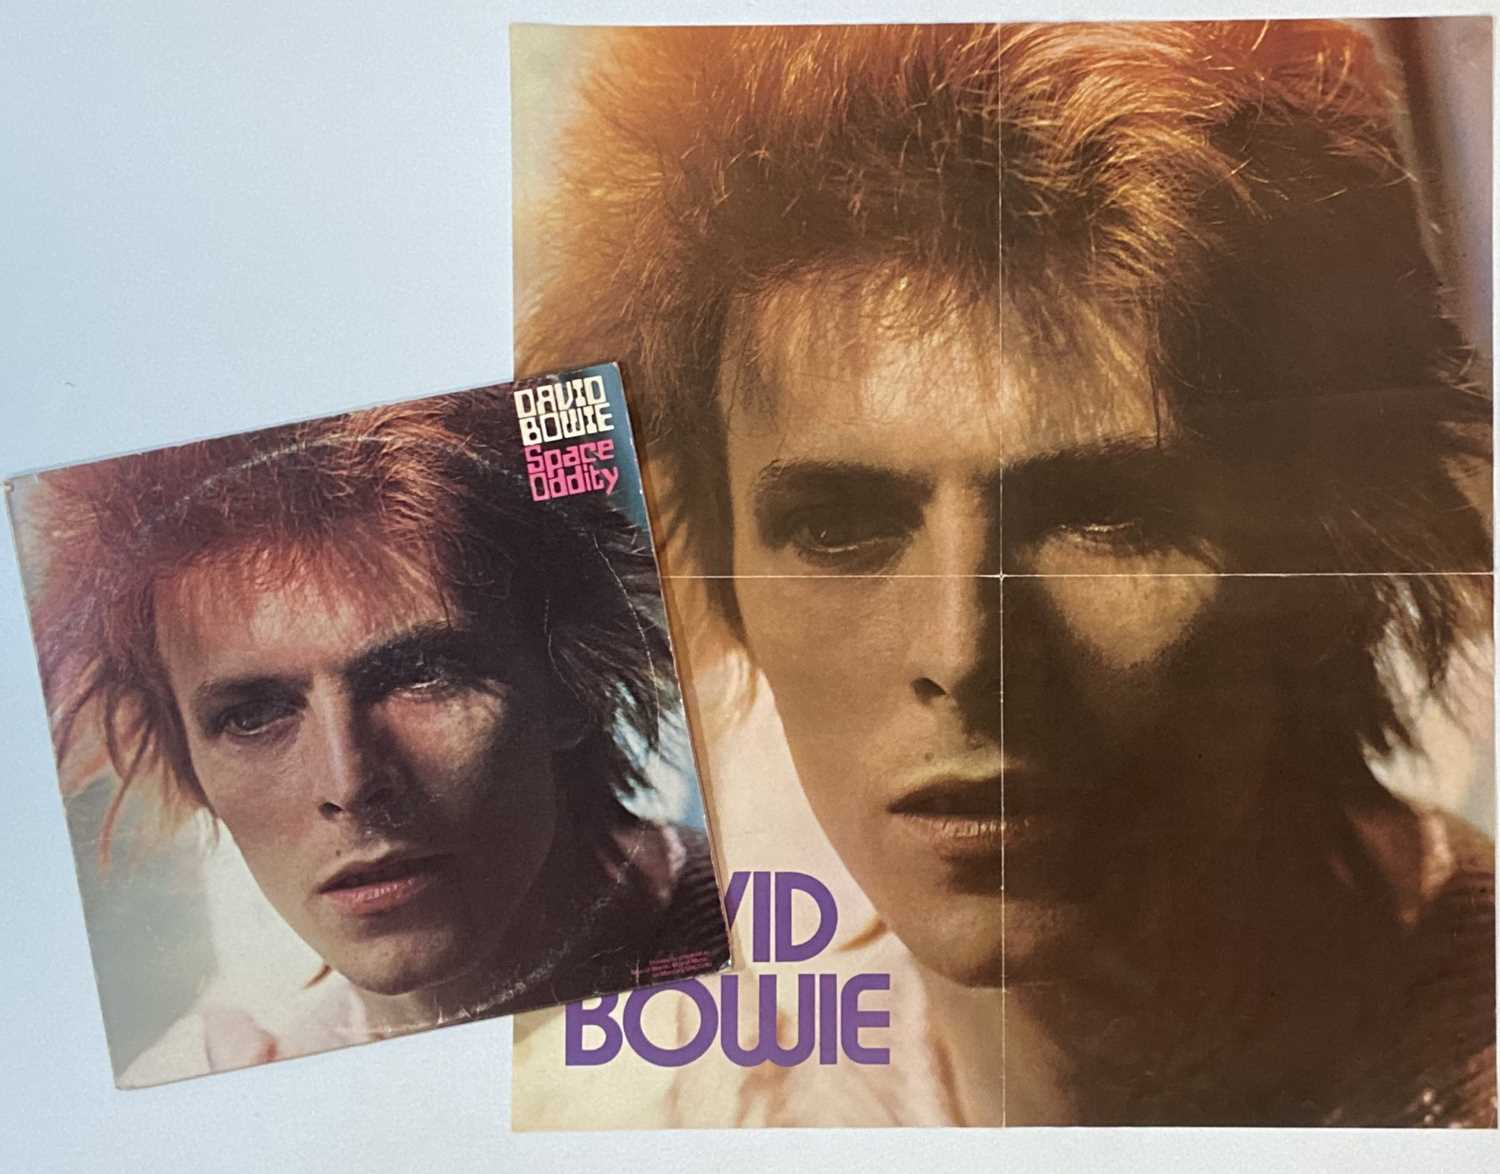 DAVID BOWIE - NORTH AMERICAN/ROW/PICTURE DISCS - LPs - Image 3 of 4